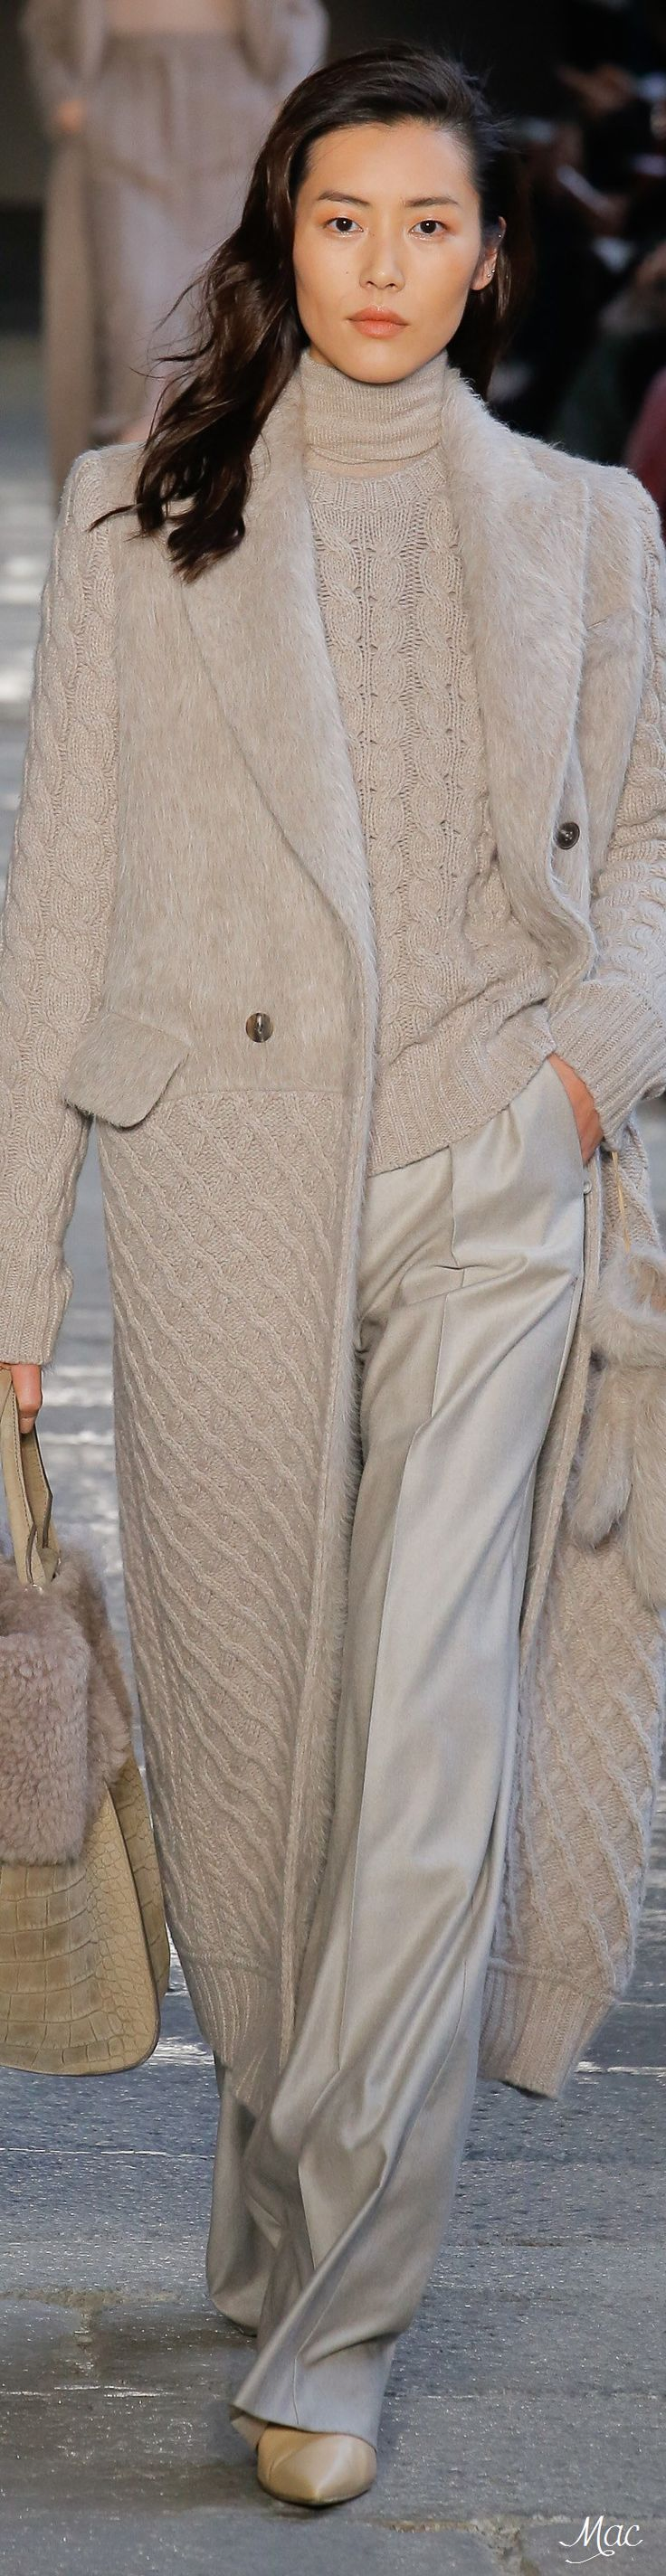 Fall 2017 RTW Max Mara. I have always been a fan of MM coats. If I lived in Europe, I would be at Max & Co. all the time. I wish he would bring this chain to the US or let us just purchase on-line!!!!